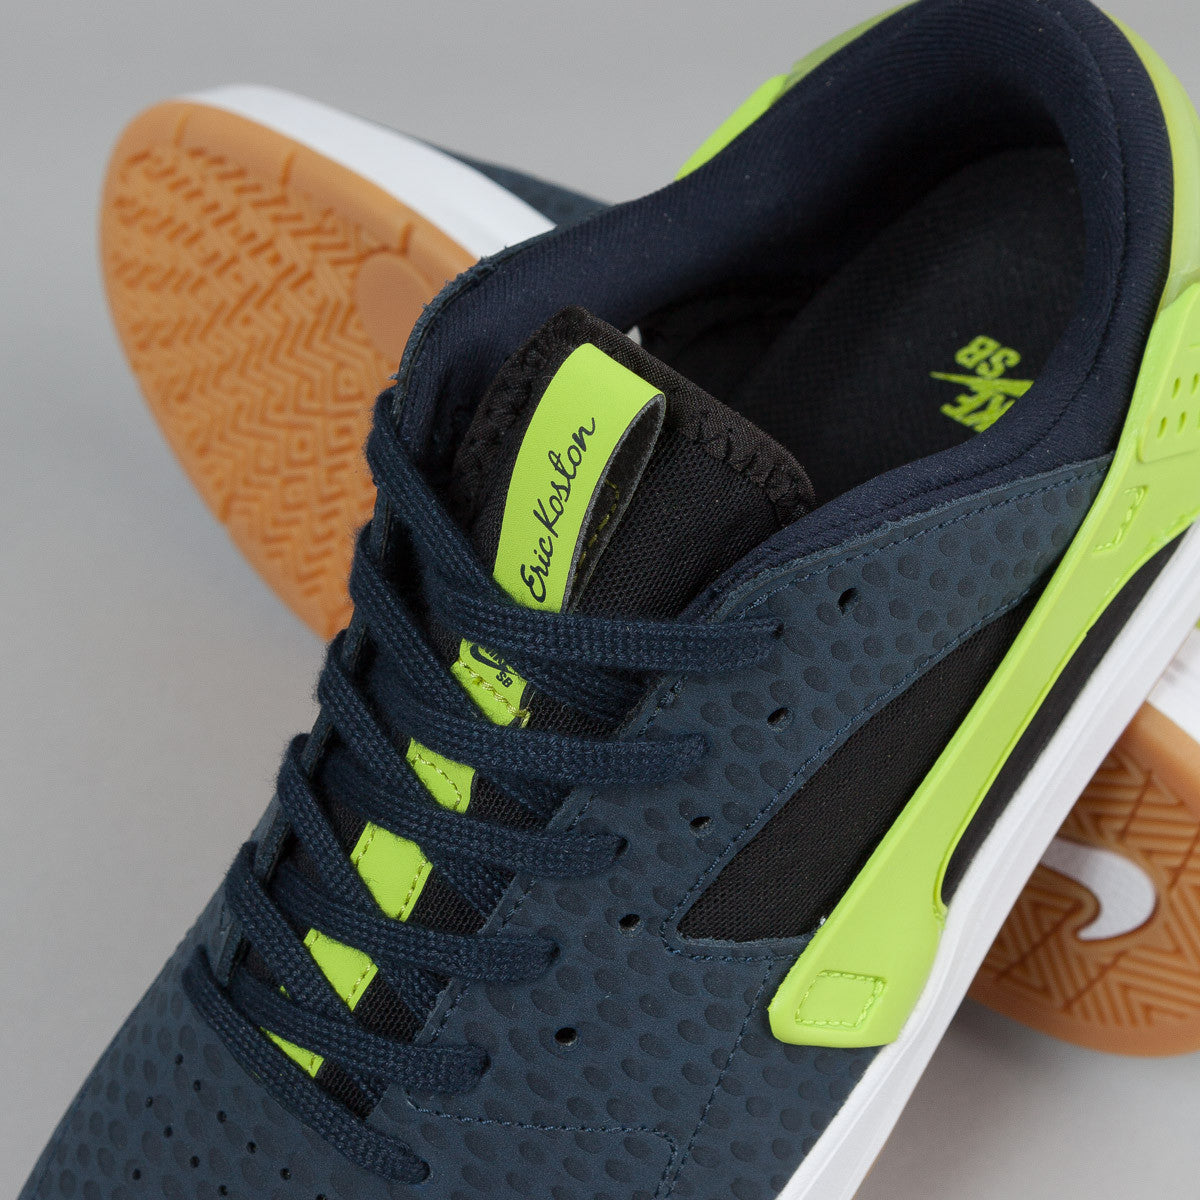 Nike SB Eric Koston Huarache Shoes - Dark Obsidian / Black - Cyber - Gum Light Brown